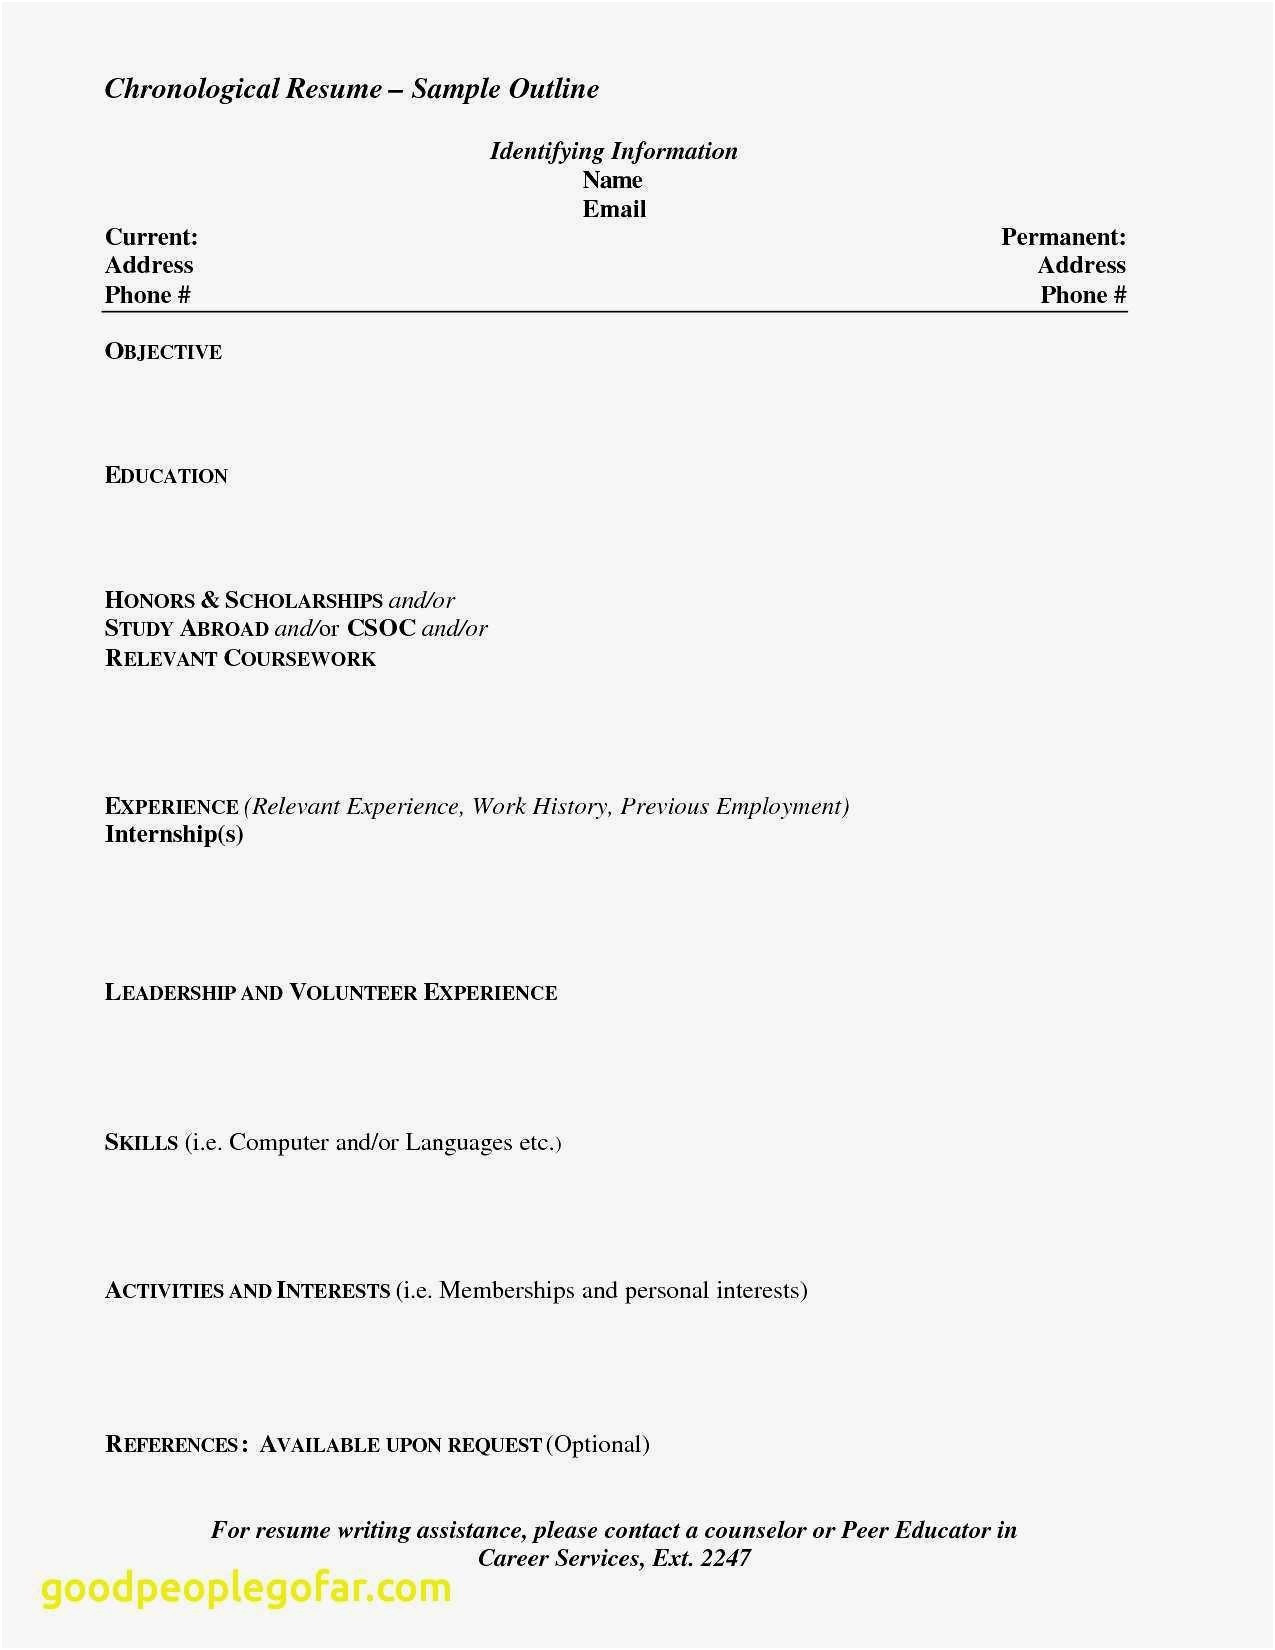 High School Scholarship Resume - Sample Resume for Recent High School Graduate Reference Unique